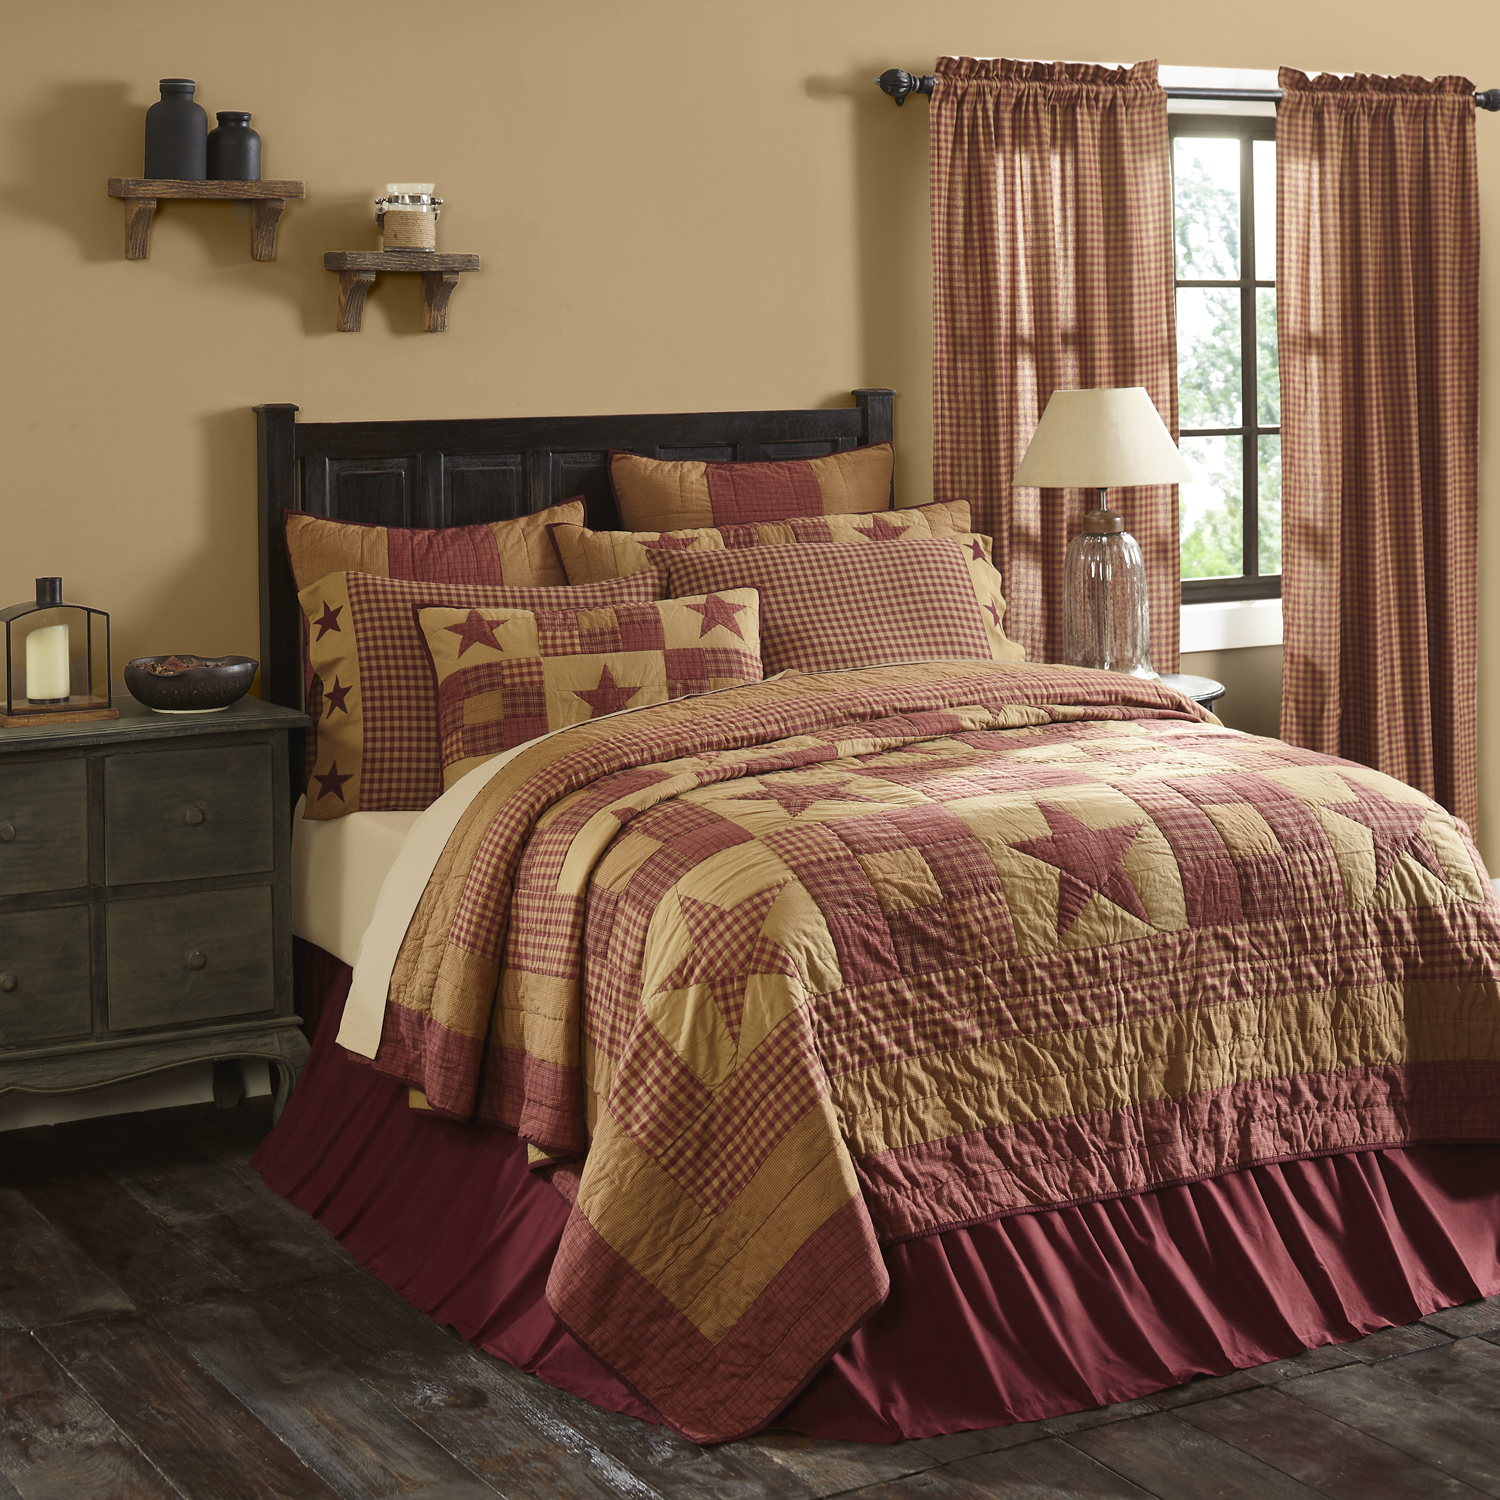 Ninepatch Star California King Quilt 130Wx115L